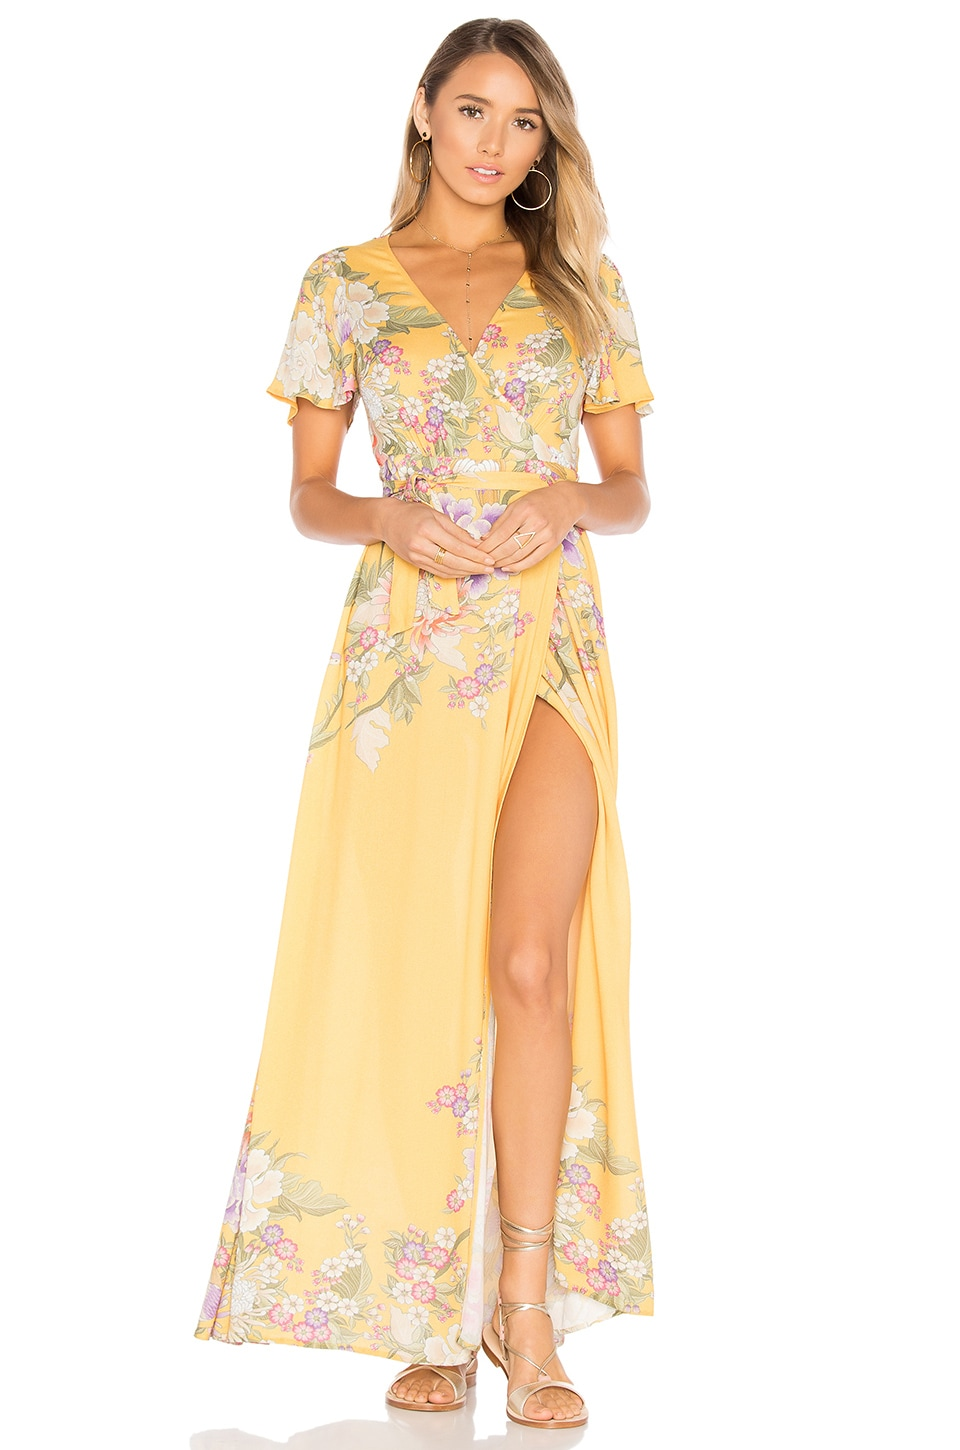 Spell & The Gypsy Collective Blue Skies Wrap Maxi Dress in Sunflower